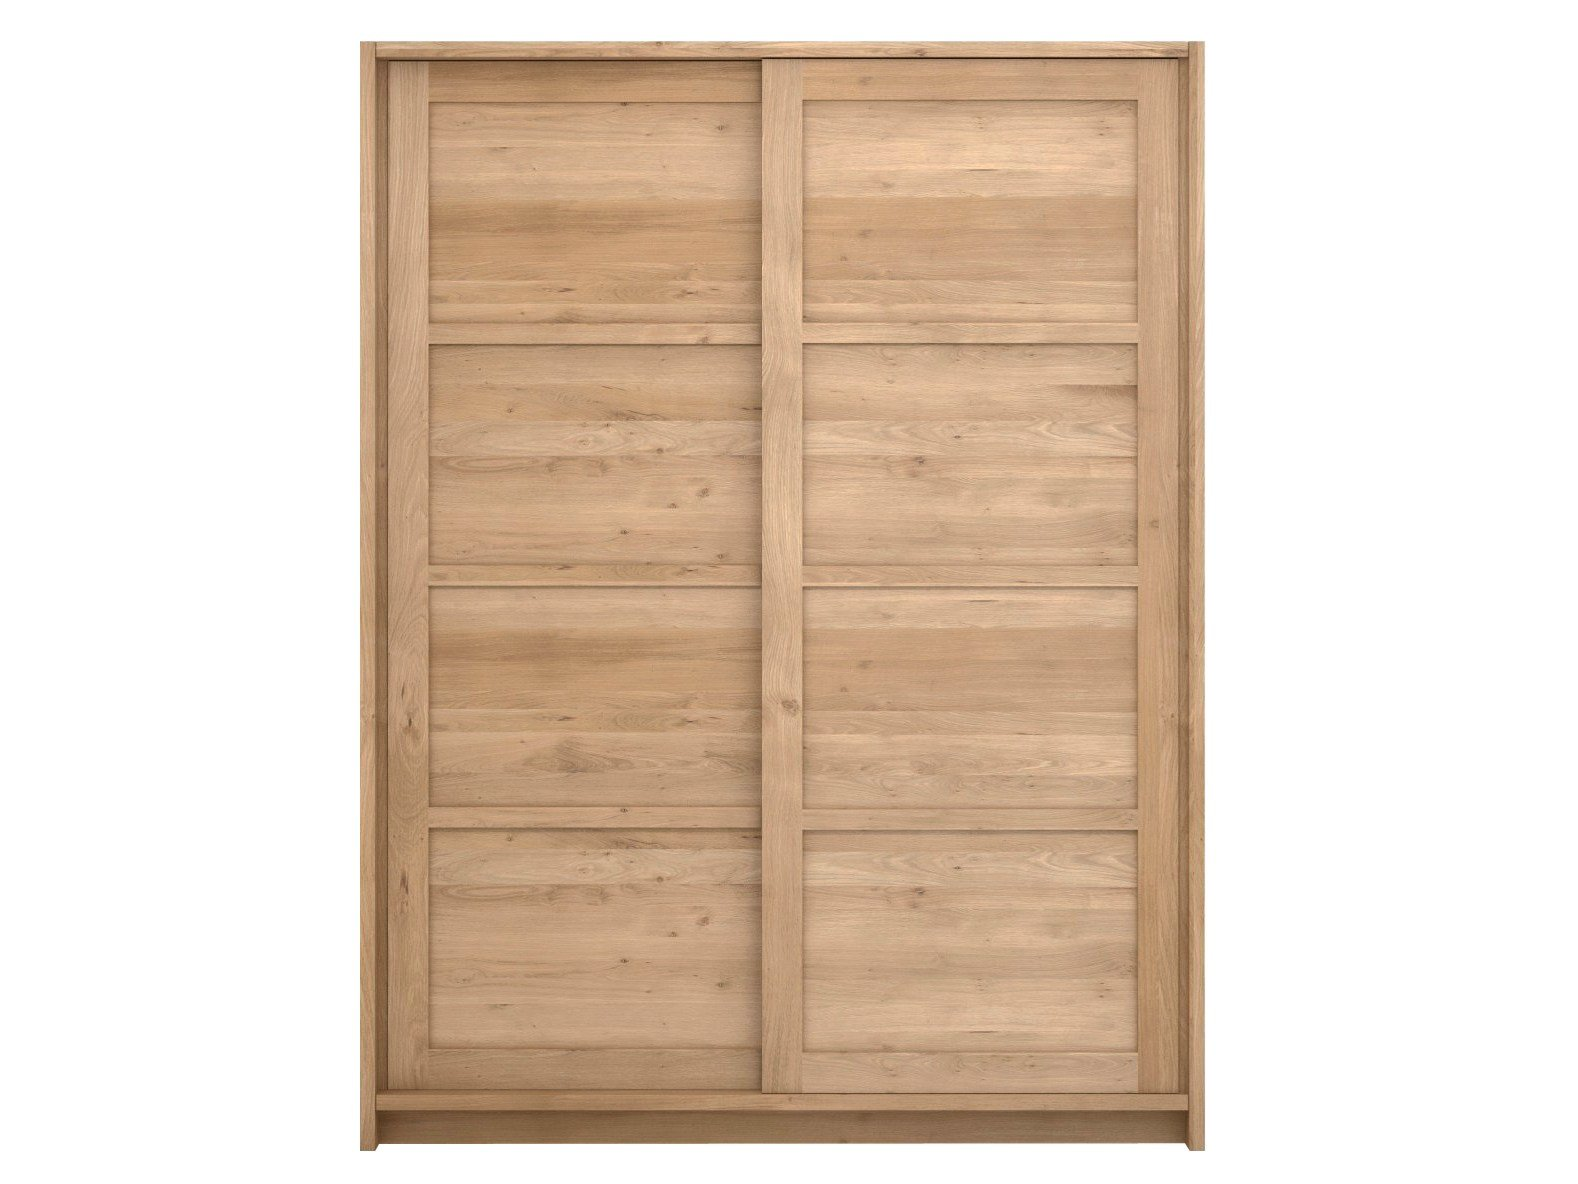 Oak knockdown armoire portes coulissantes by ethnicraft for Porte en bois